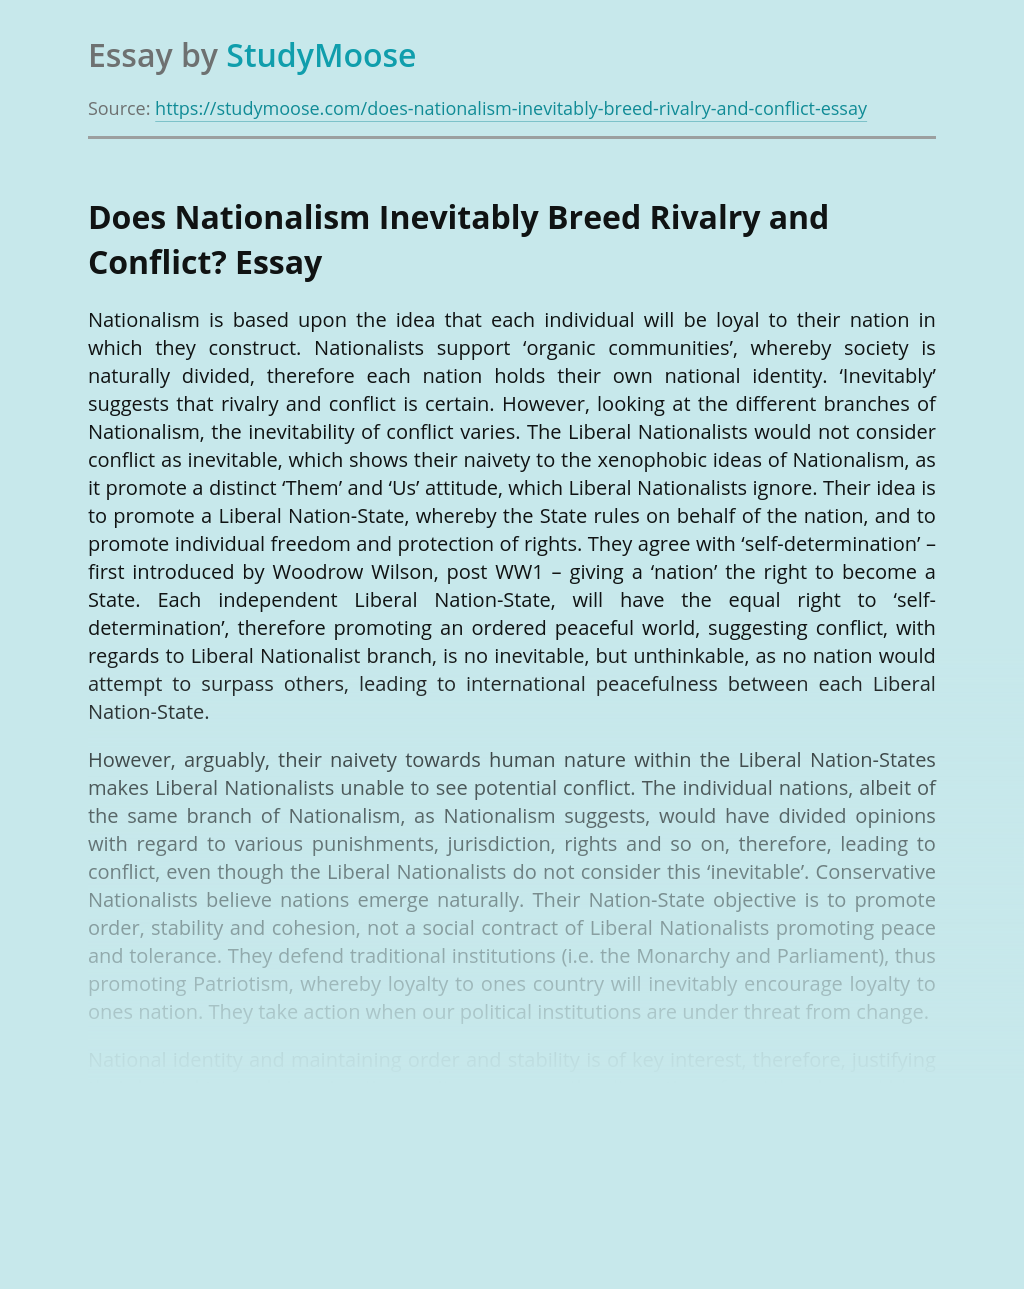 Does Nationalism Inevitably Breed Rivalry and Conflict?